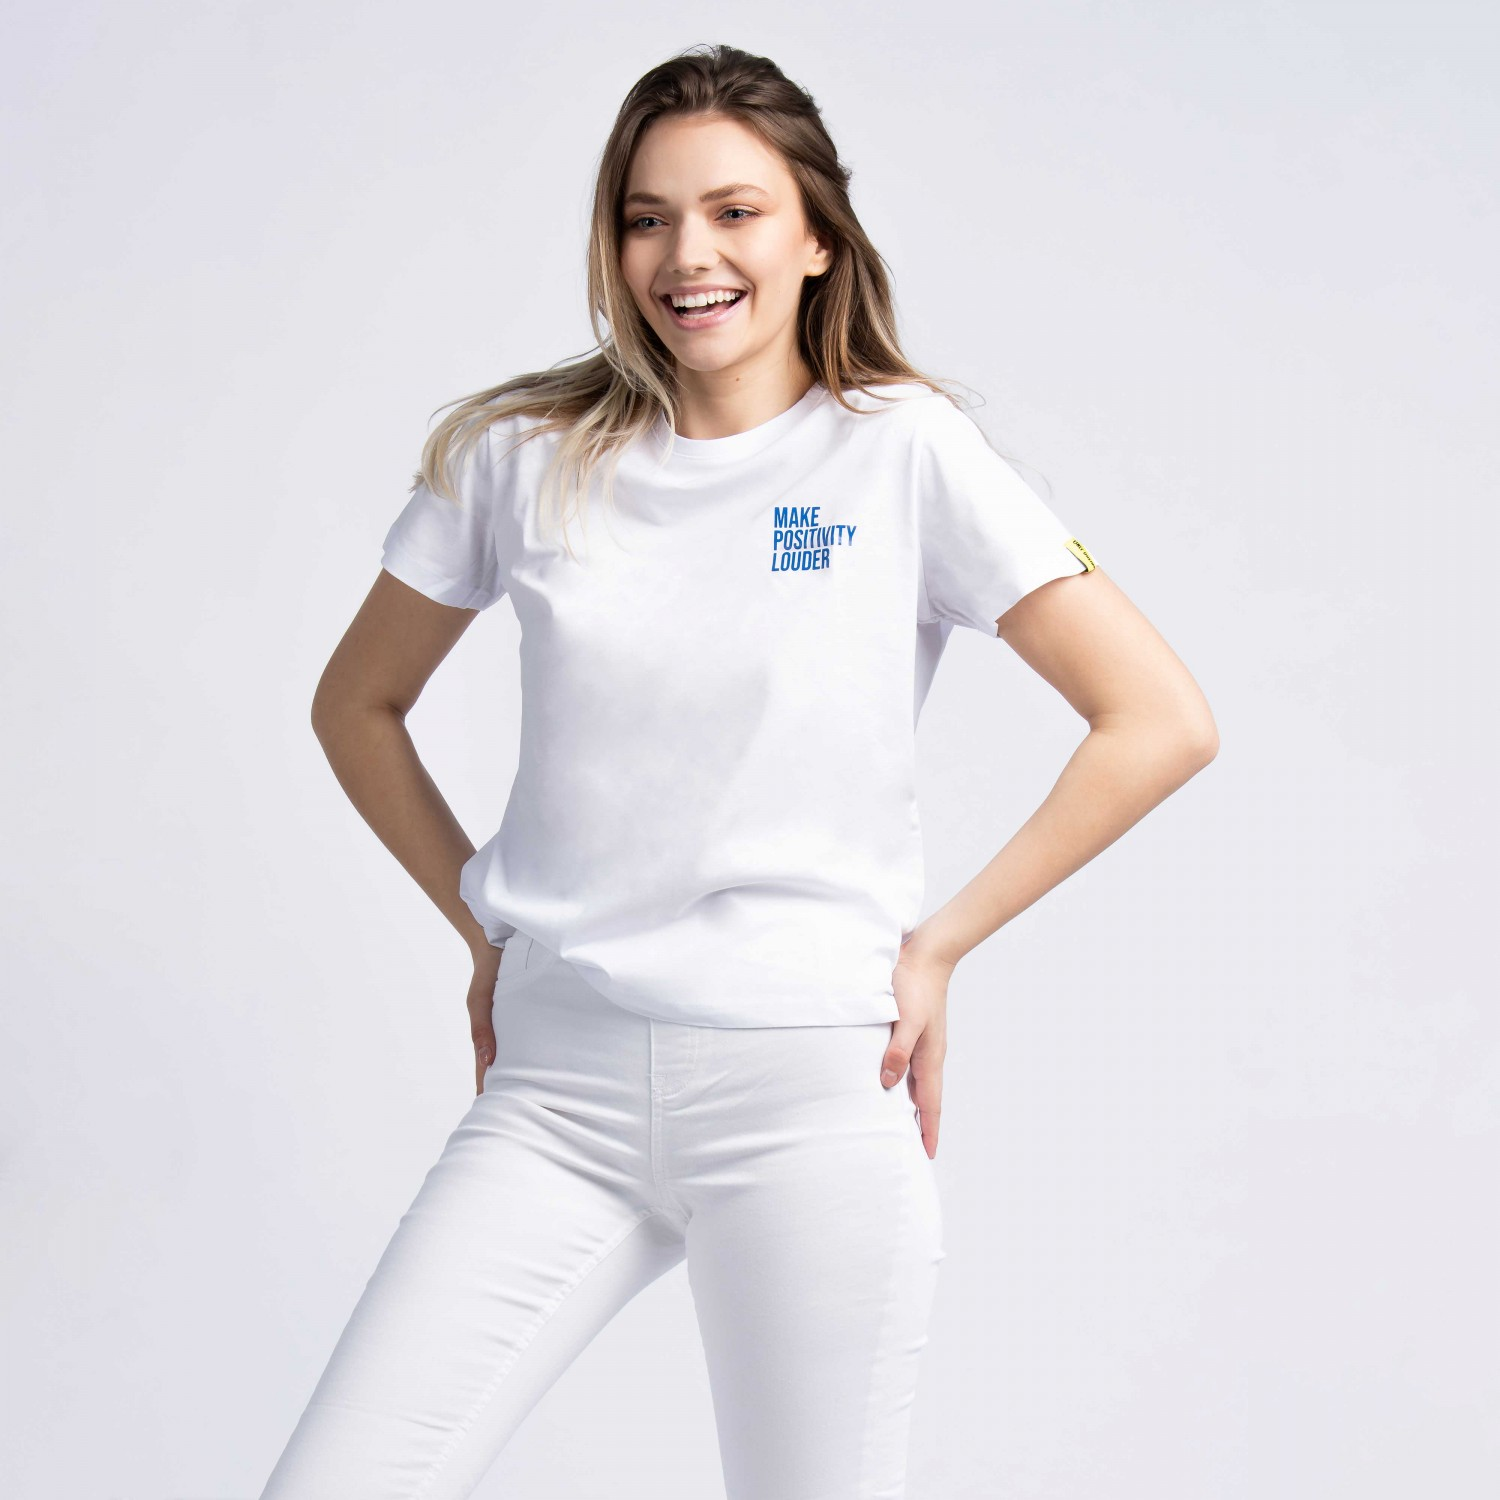 """Make Positivity Louder"" T-Shirt In White"